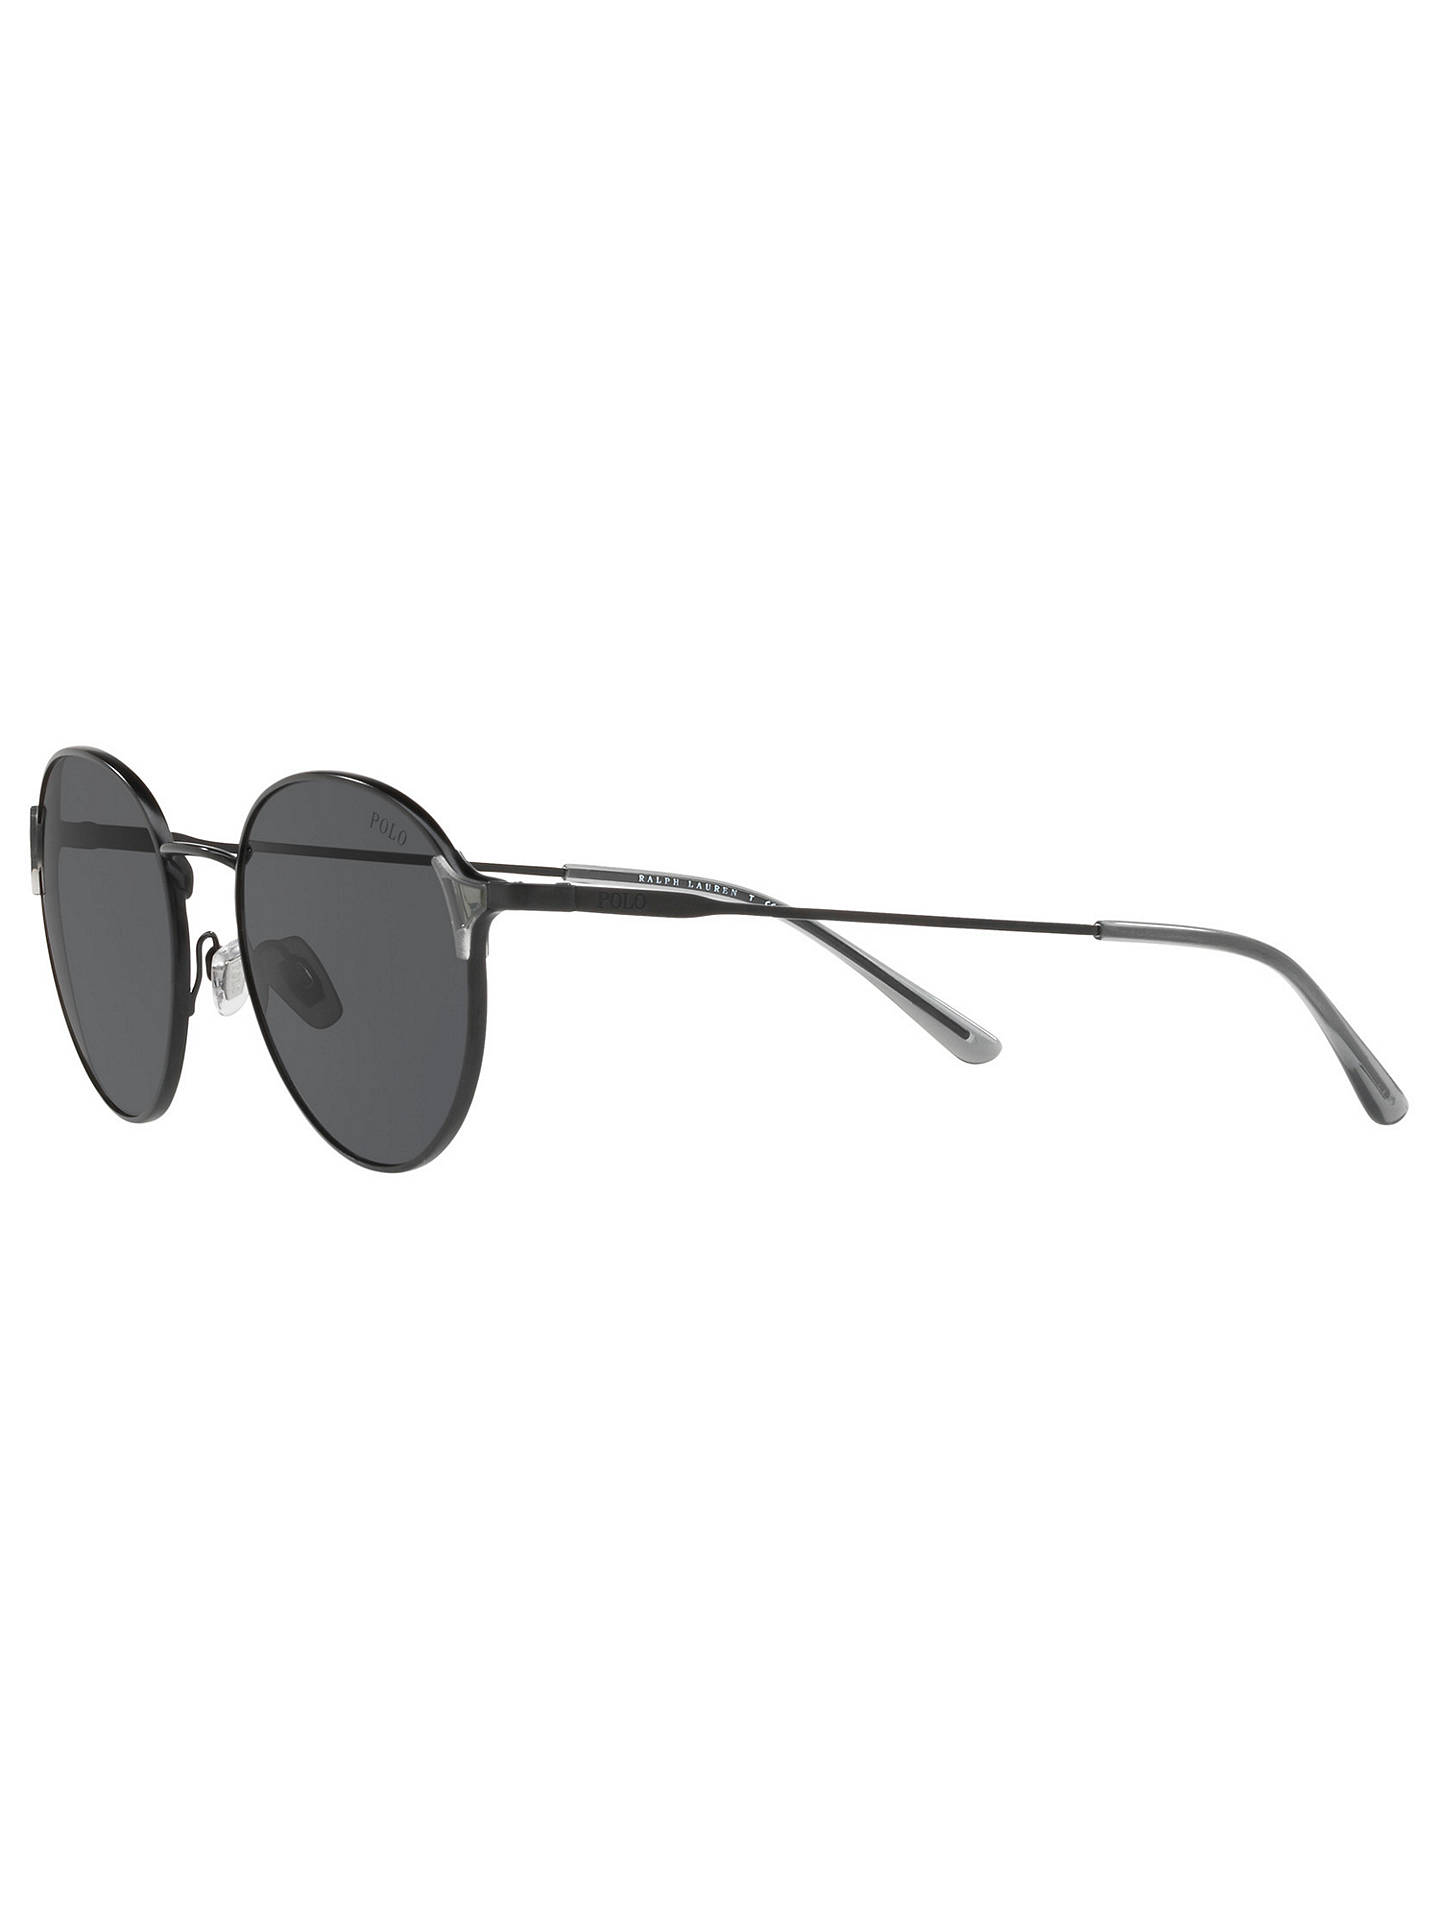 BuyPolo Ralph Lauren PH3109 Oval Sunglasses, Black/Grey Online at johnlewis.com